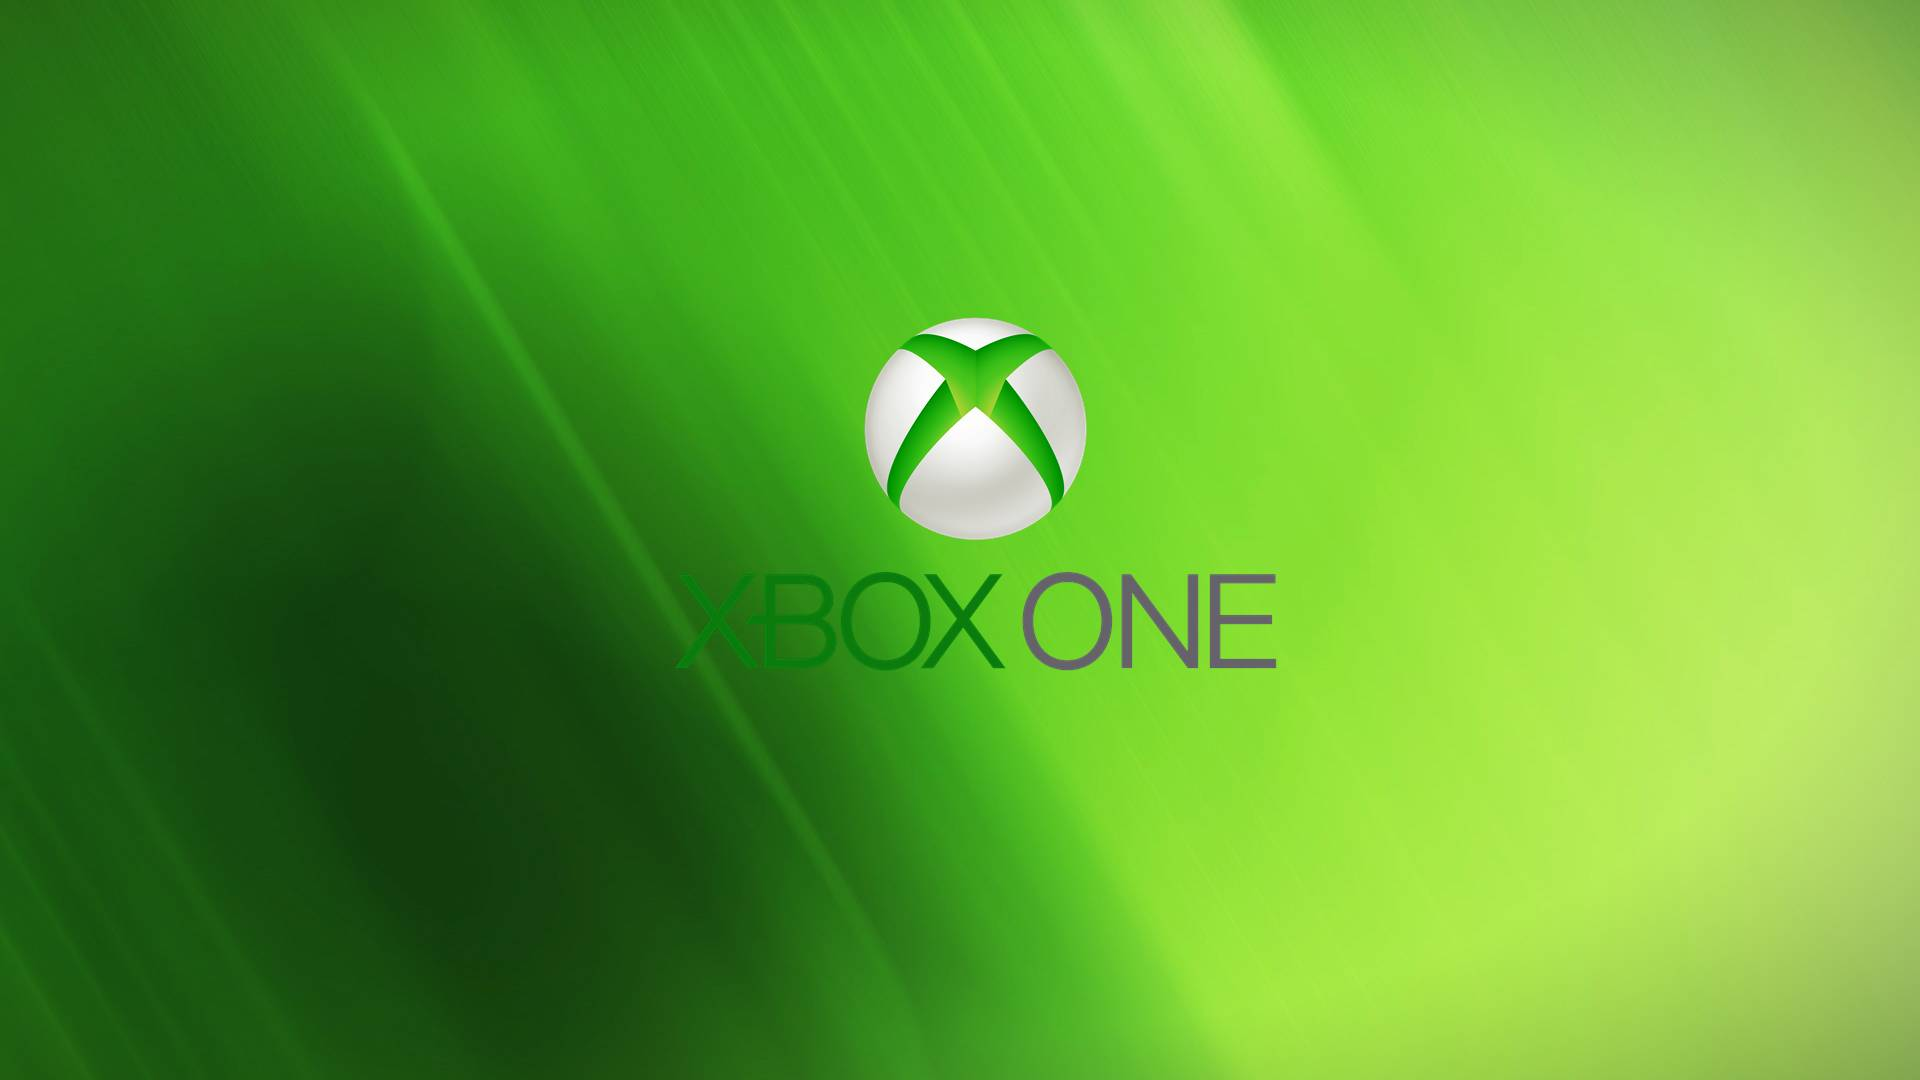 Xbox One Wallpapers: Live Wallpapers For Xbox One